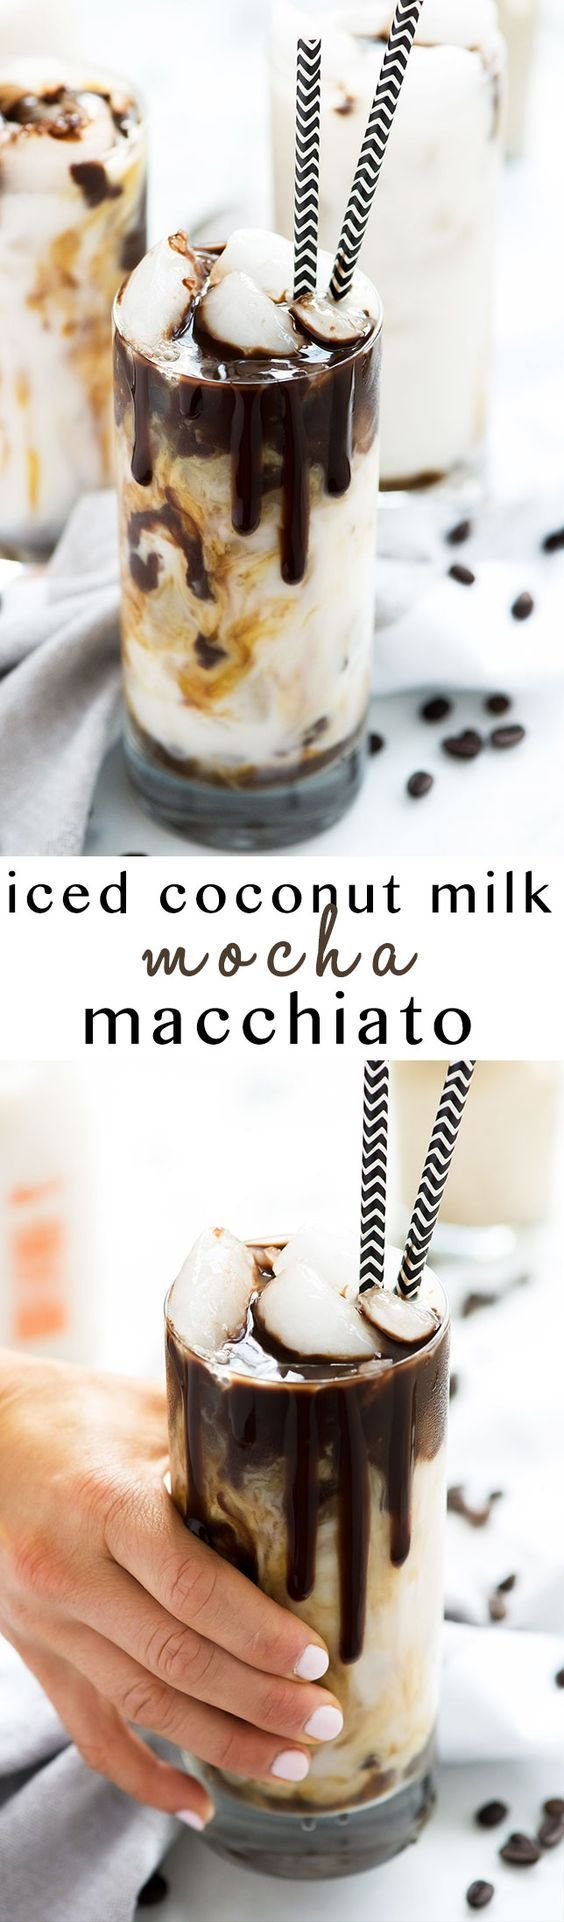 Iced Coconut Milk Mocha Macchiato is just how I want to start each day or give my afternoon a java jolt! Creamy coconut milk swirled with rich chocolate and topped with espresso. So fancy you will be calling yourself a barista! #CoffeeDrinks